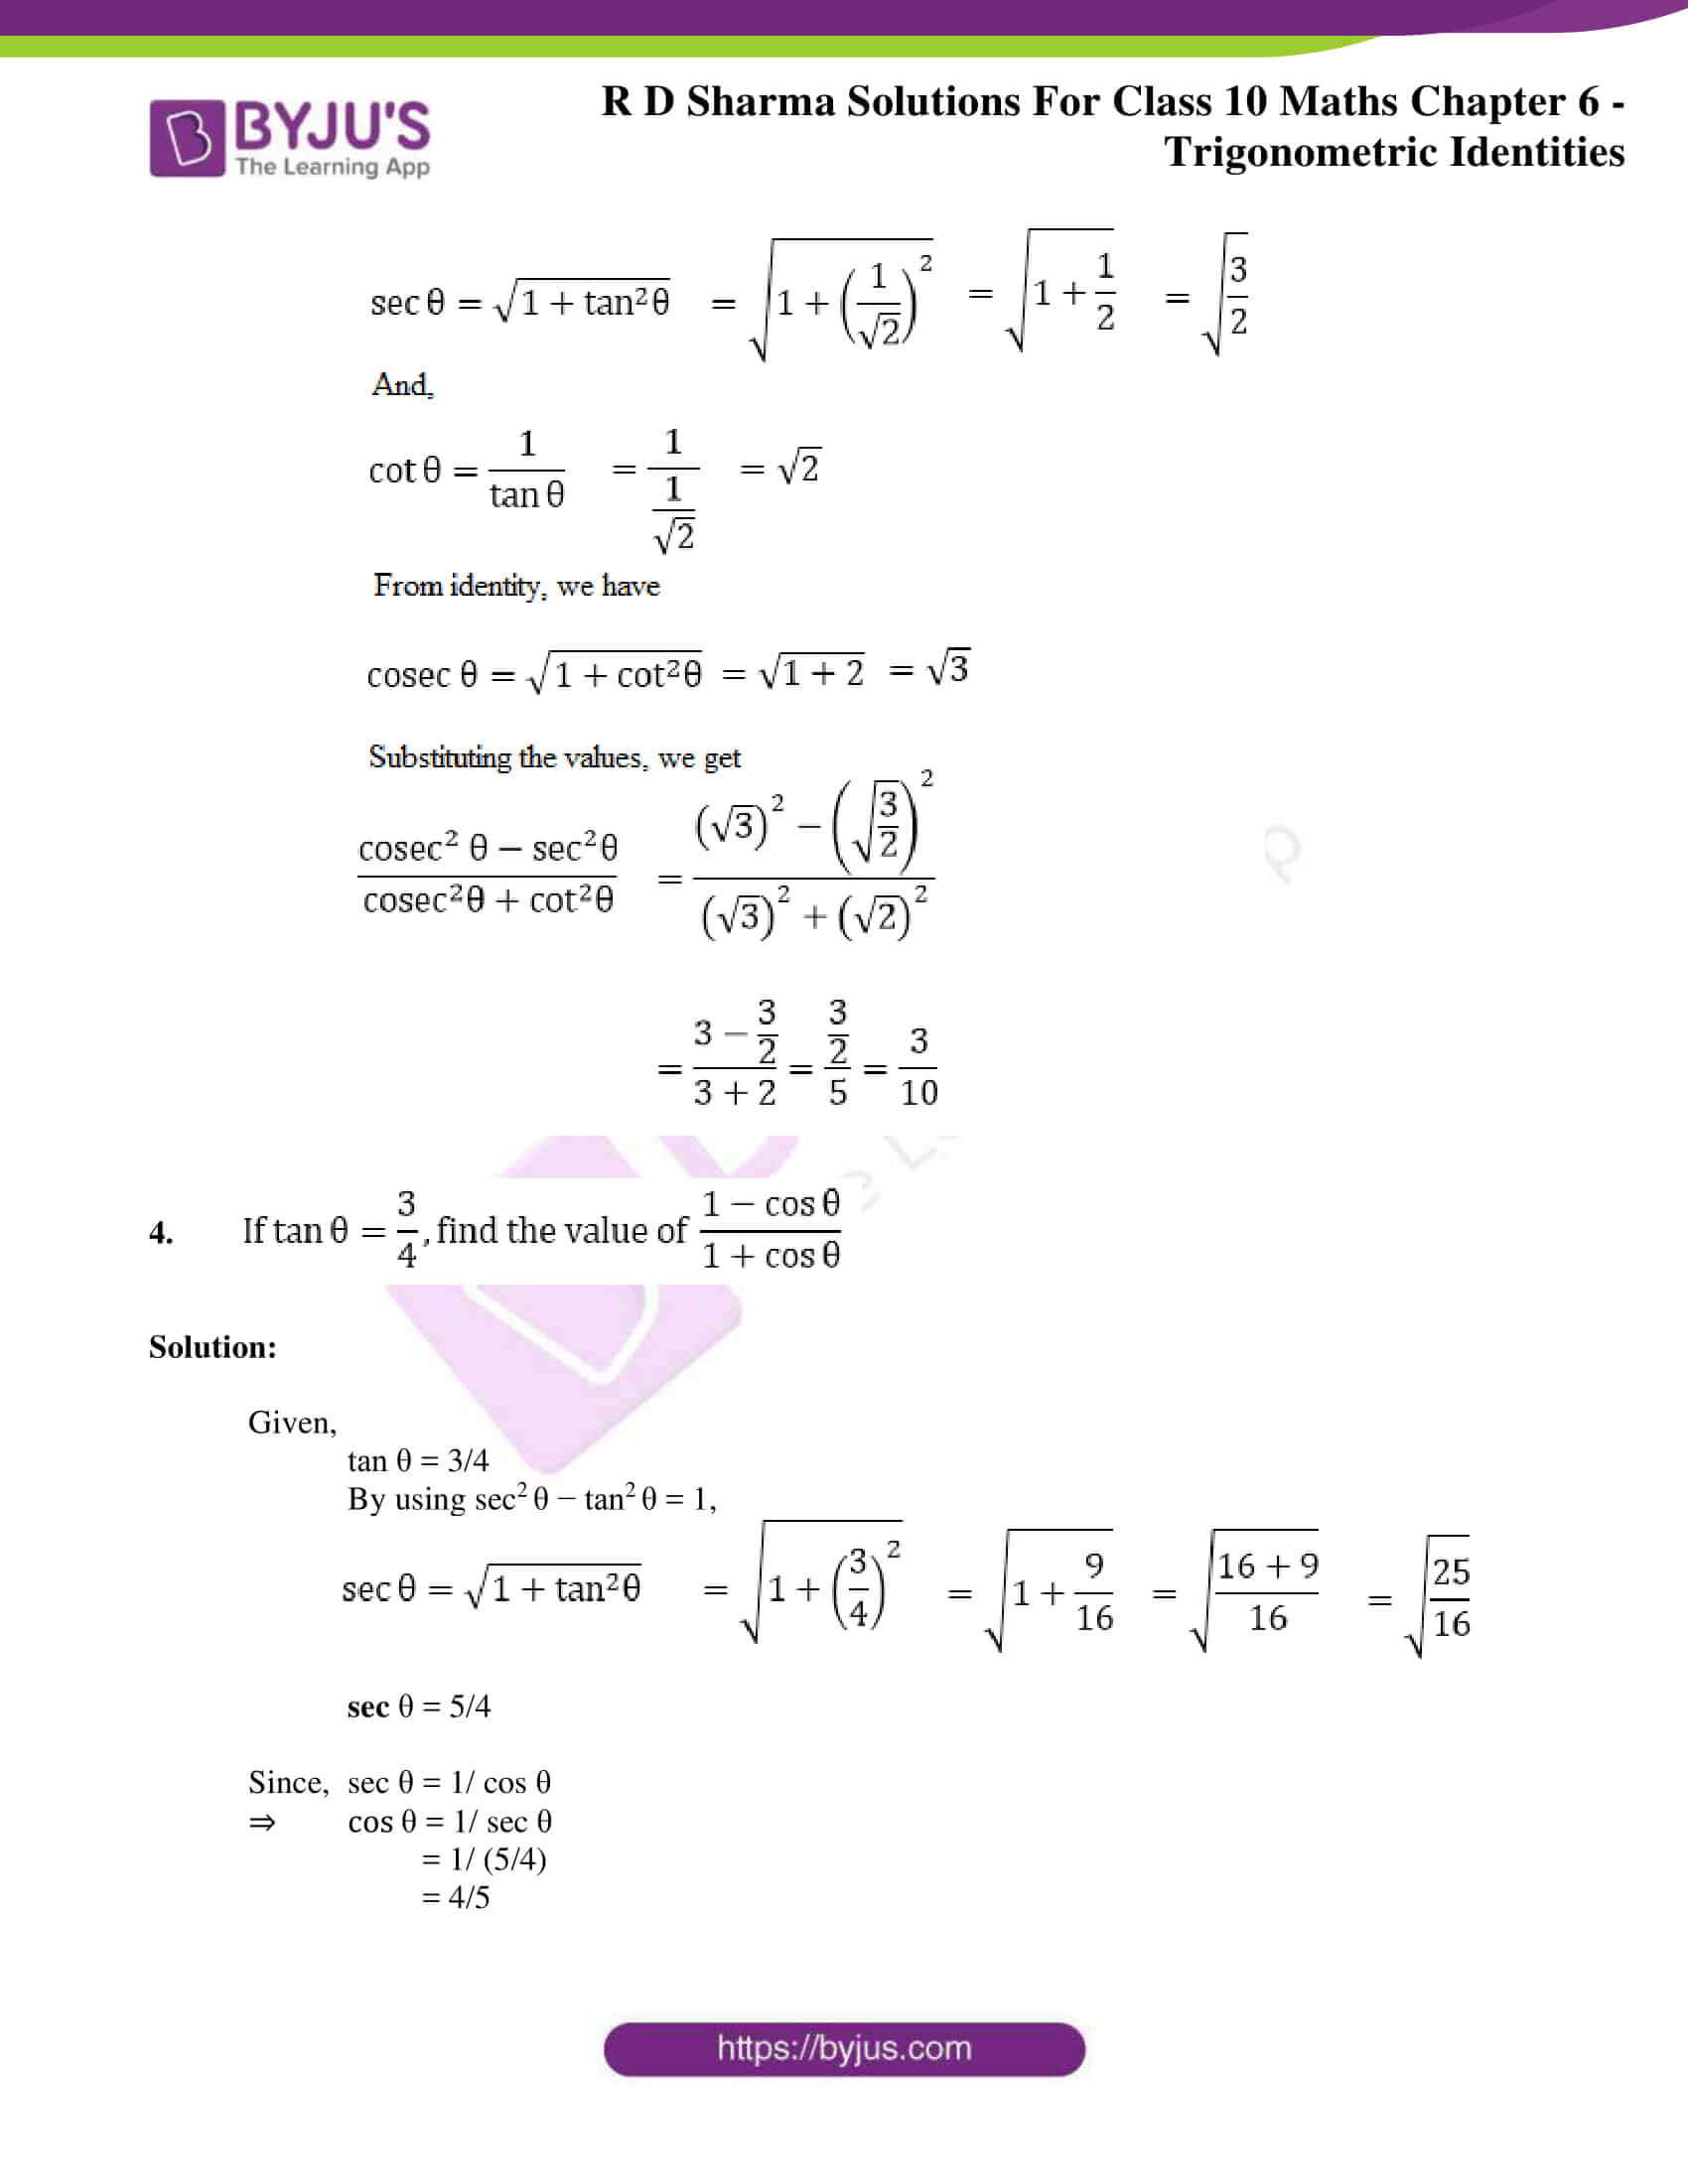 RD Sharma Solutions for Class 10 Chapter 6 Trigonometric Identities 32